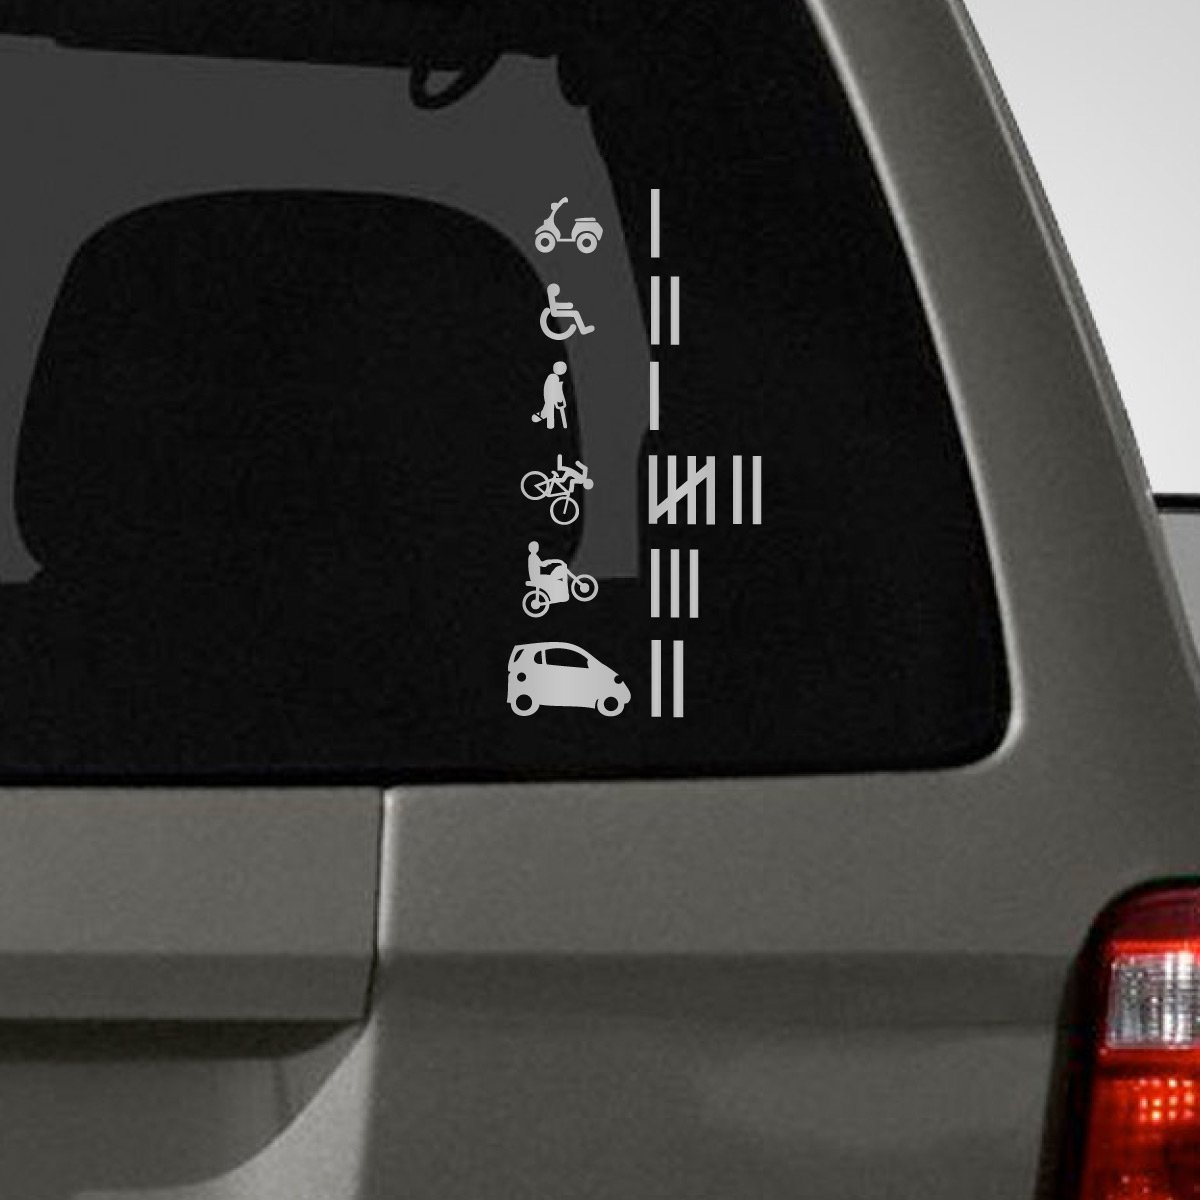 Amazoncom Your Stick Family Was Delicious TRex Vinyl Decal - Vinyl decal stickers for cars